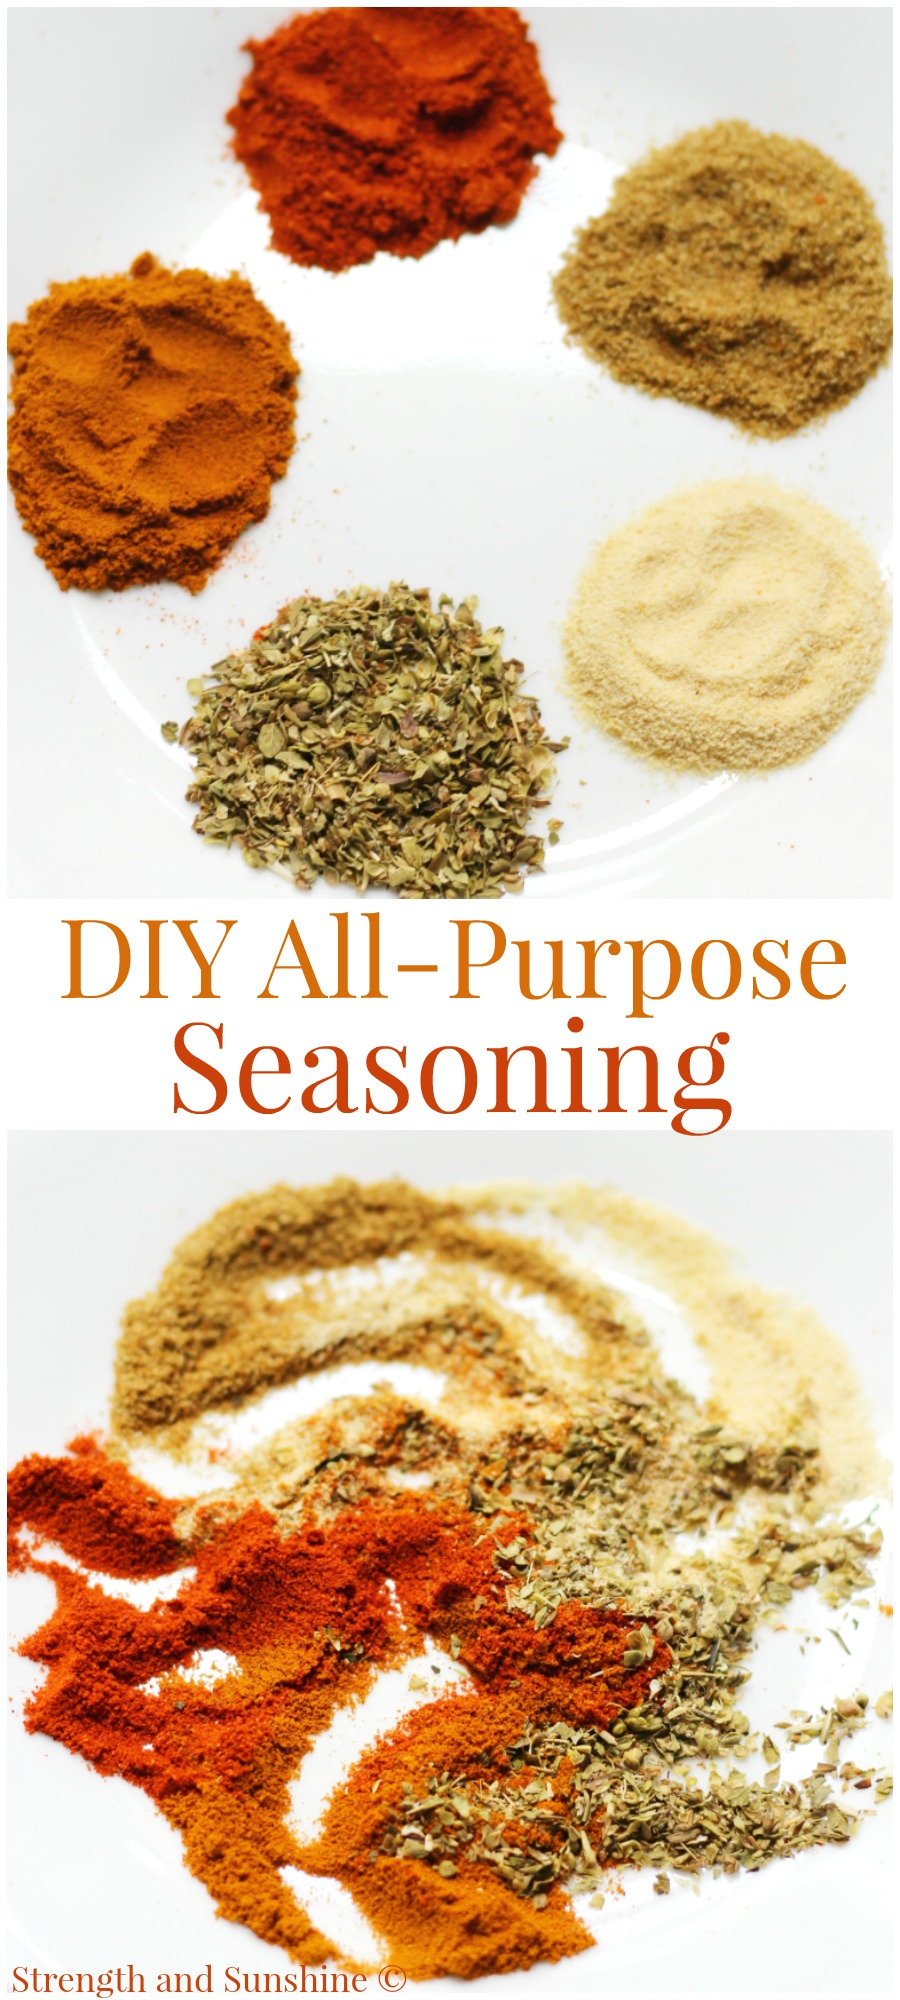 DIY All-Purpose Seasoning + Pantry Supplies Storage Hacks | Strength and Sunshine @RebeccaGF666 A perfect DIY All-Purpose Seasoning recipe, gluten-free, salt and sugar-free, that will spice up any dish! Plus some trendy hacks for traveling, transporting, storing and organizing all you small pantry cooking and baking essentials!